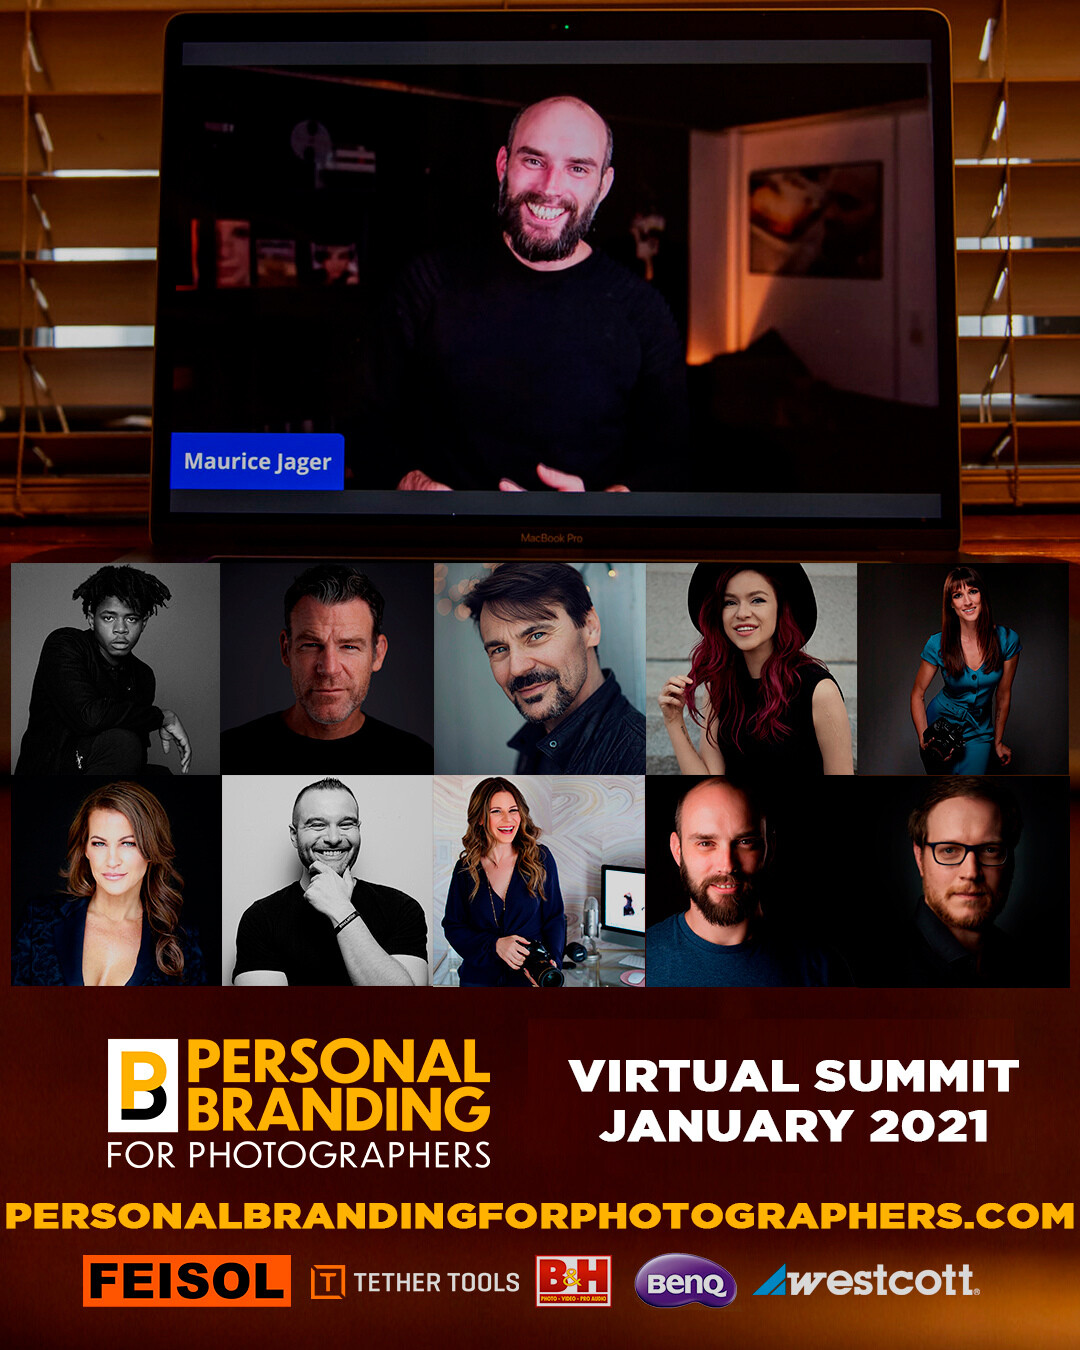 Personal Branding for Photographers virtual summit January 2021